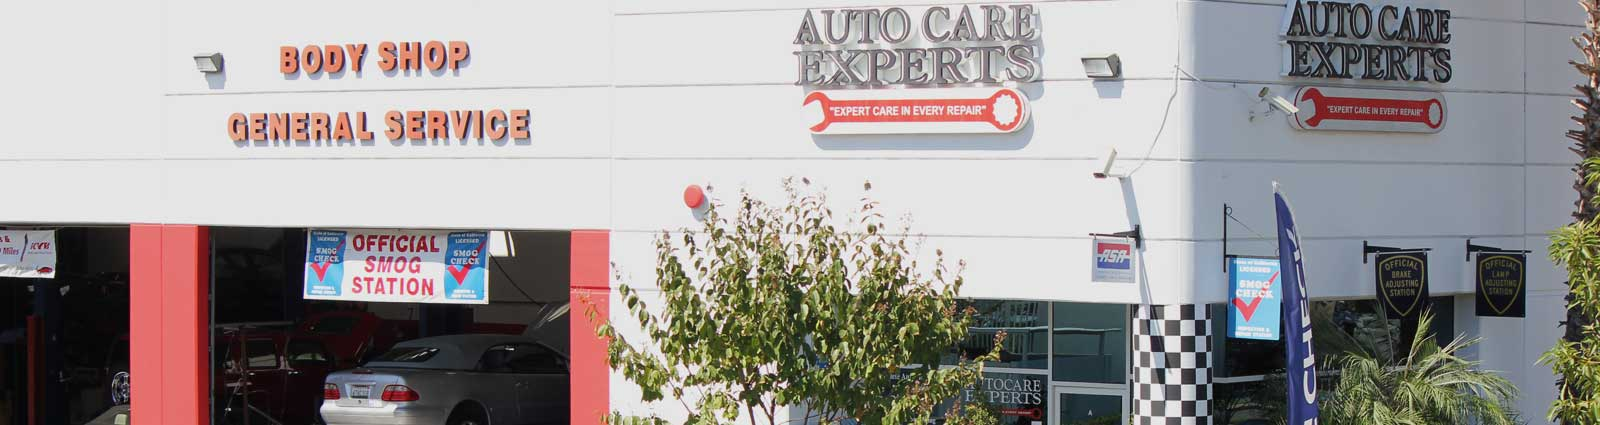 body shop and mechanics shop - Auto Care Experts in Mission Viejo